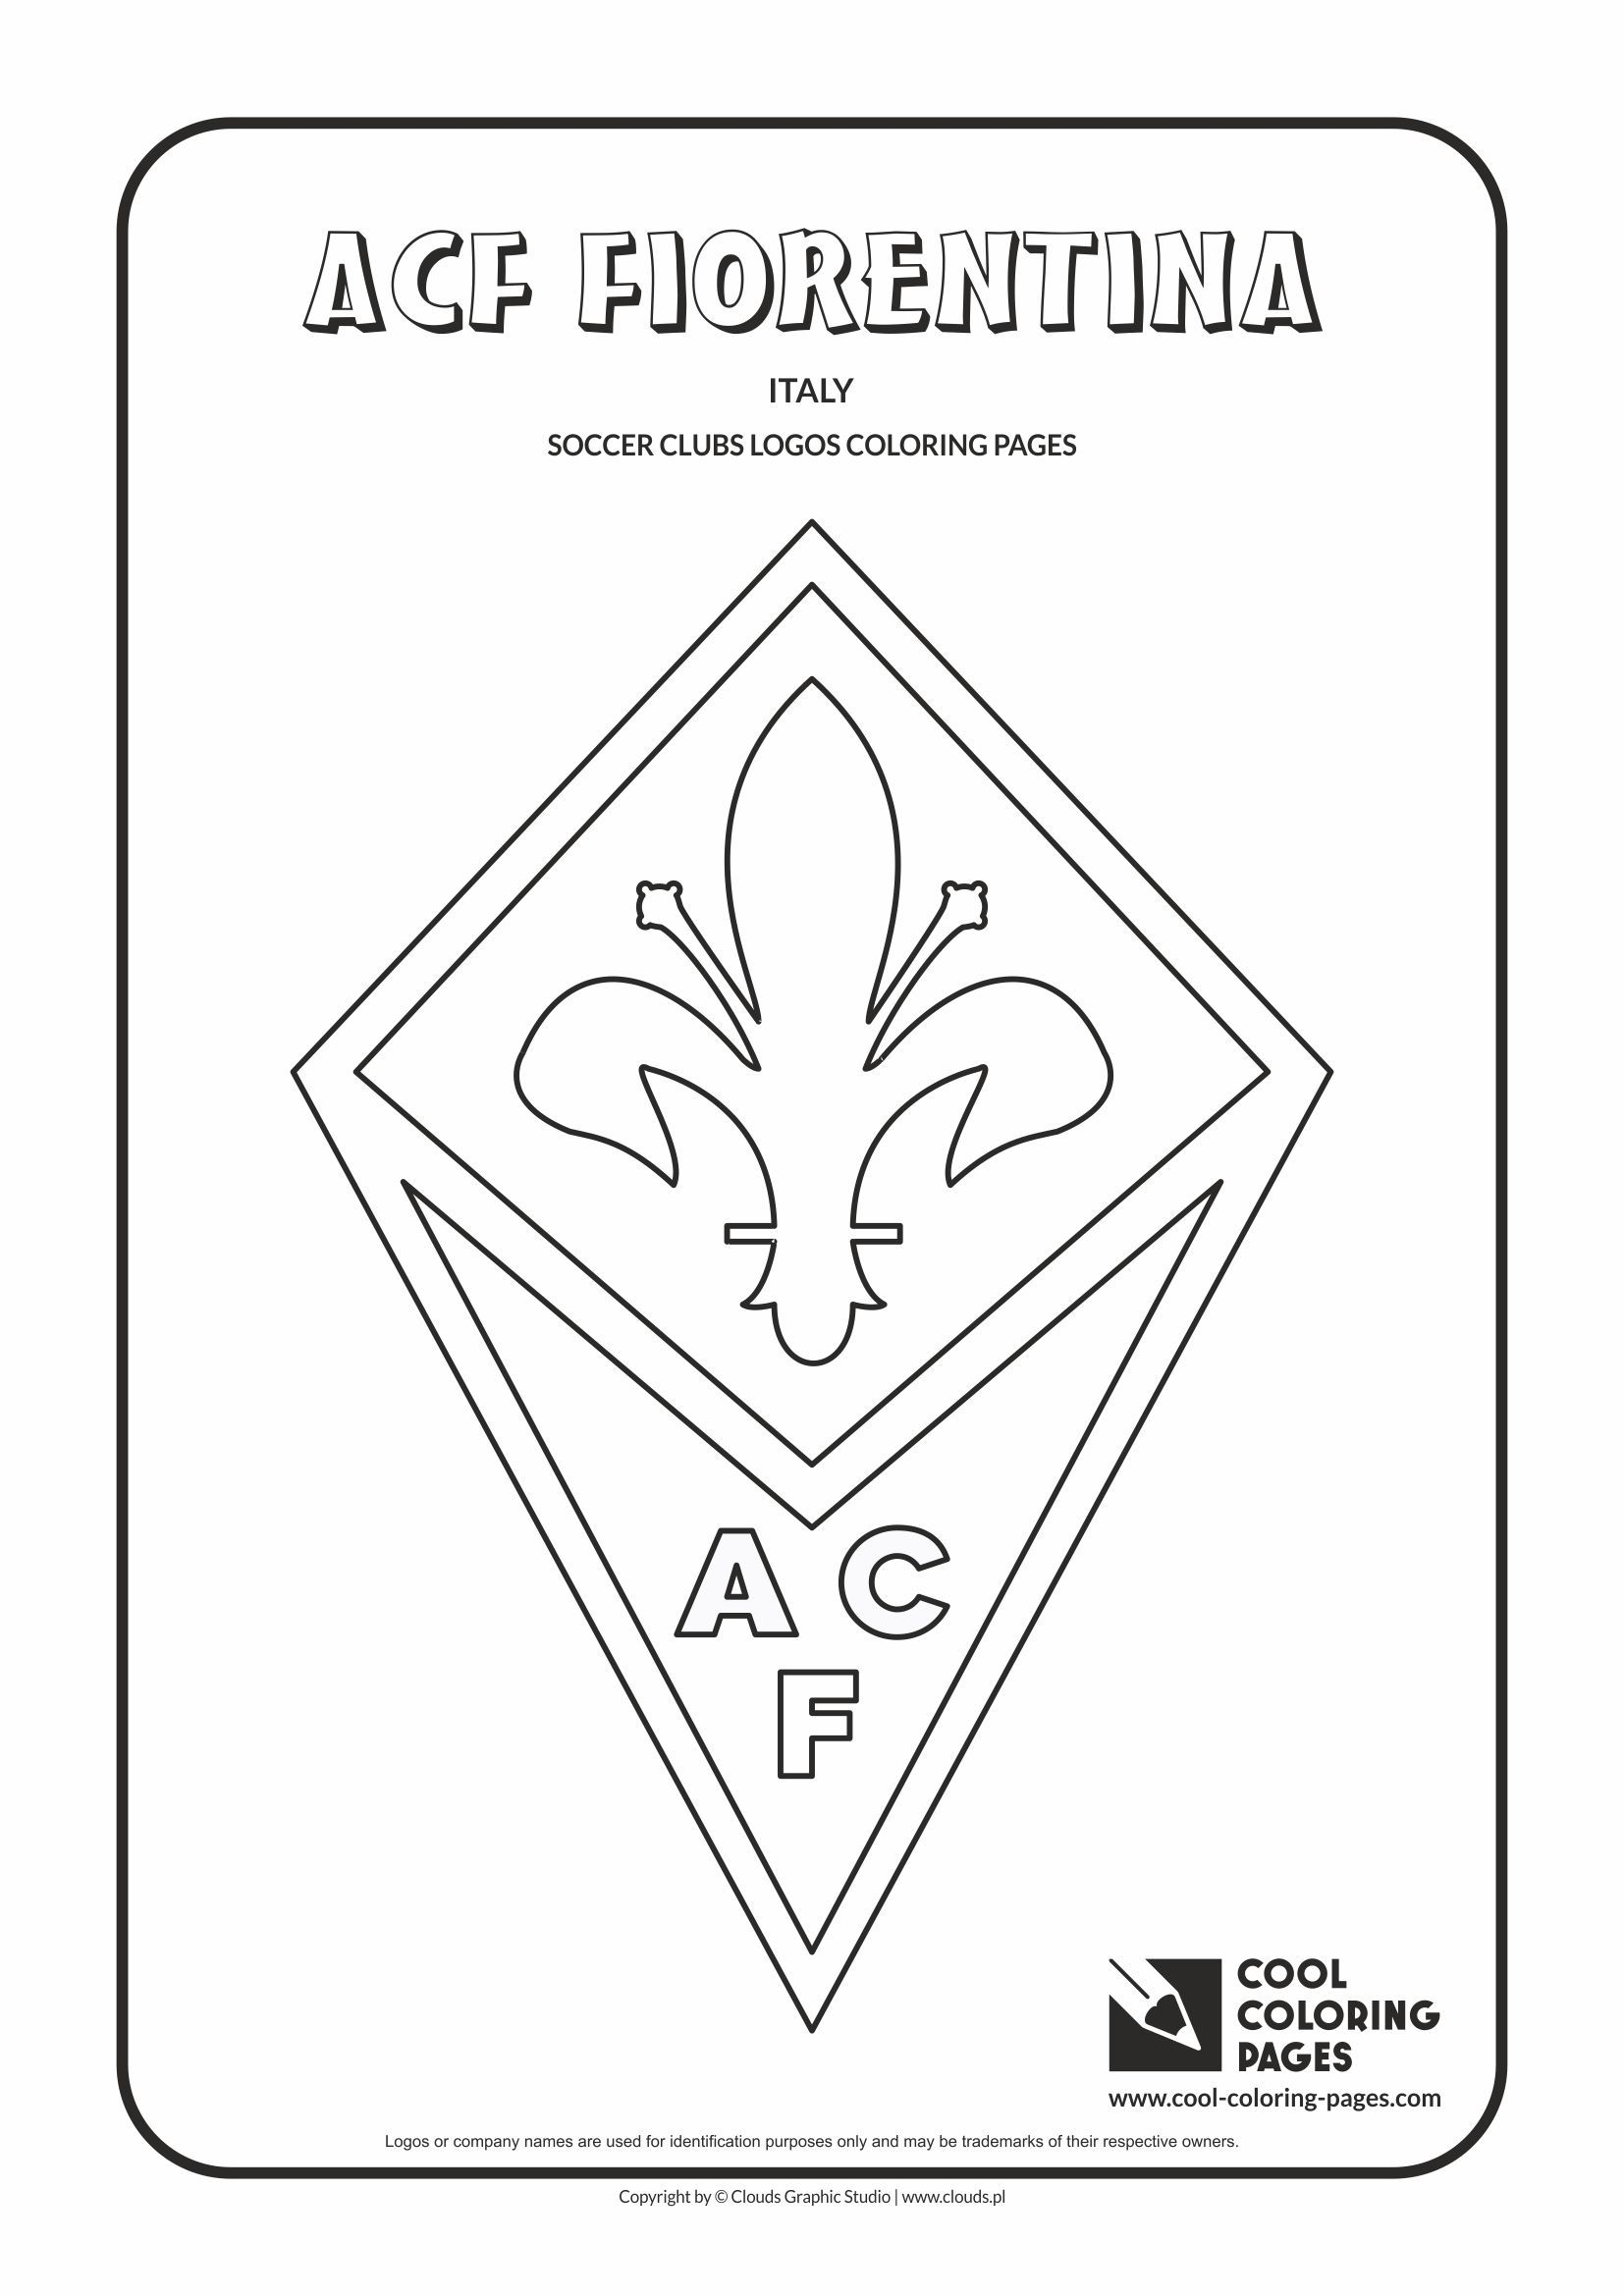 acf fiorentina logo coloring coloring page with acf fiorentina